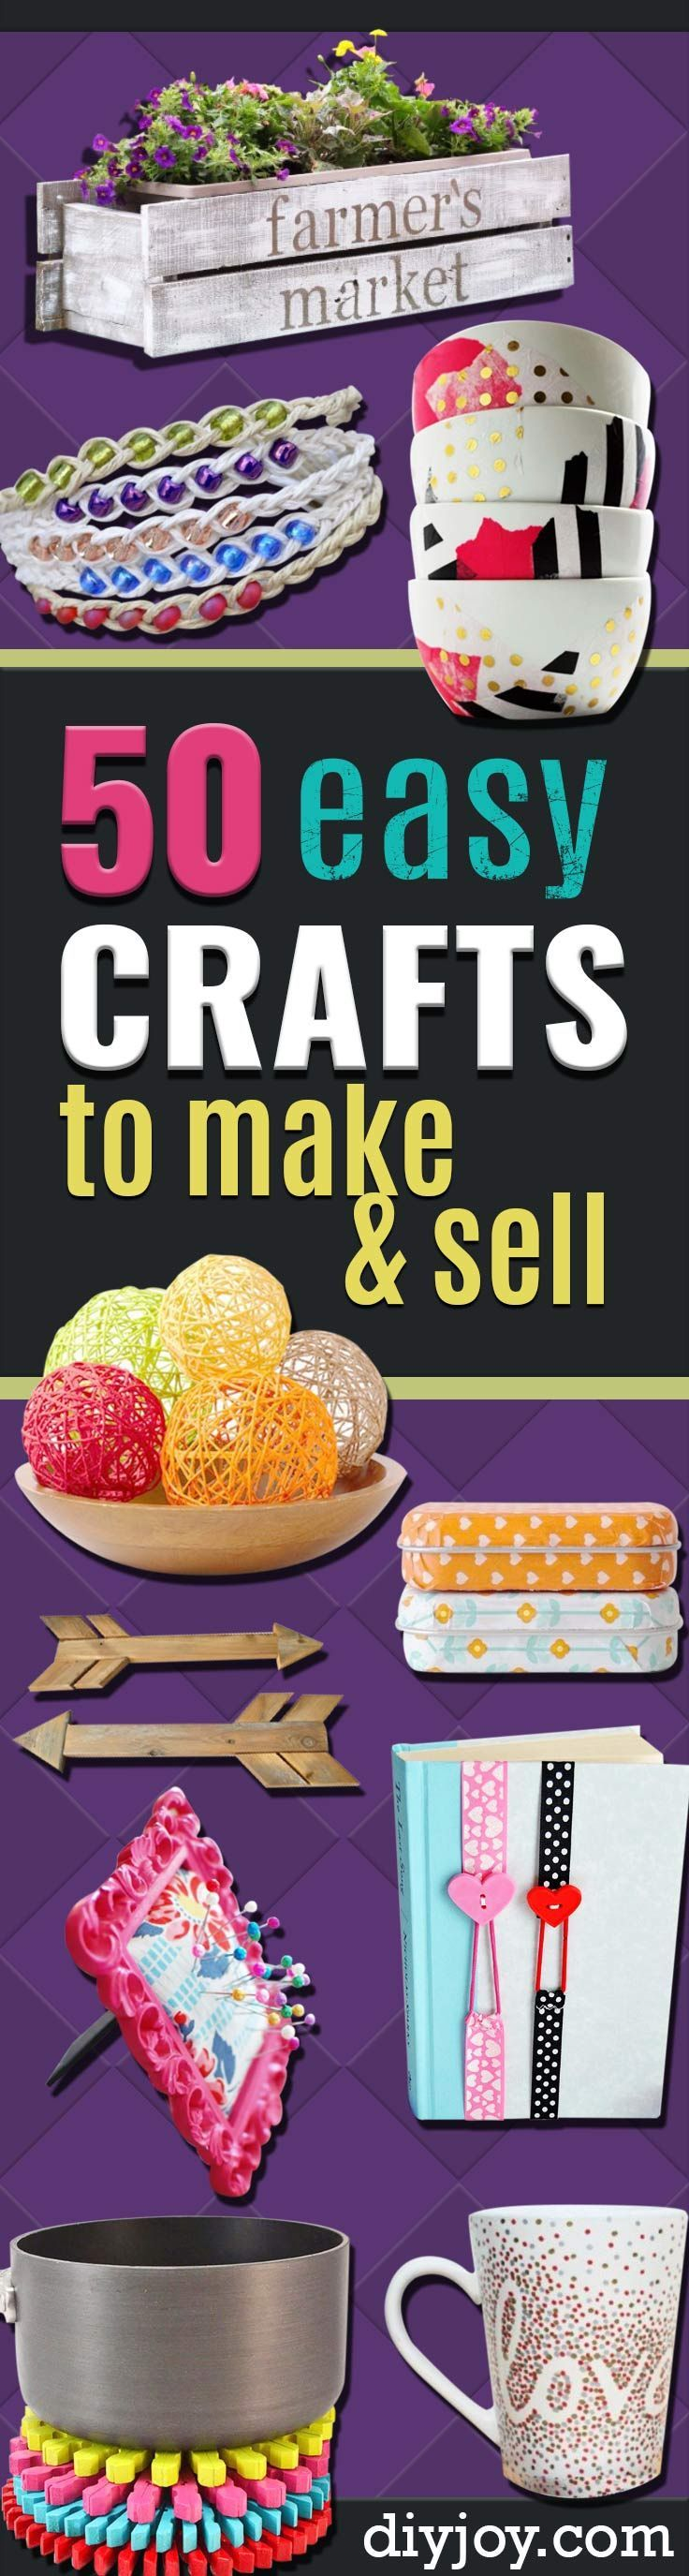 50 Easy Crafts To Make And Sell Easy Crafts To Make Crafts To